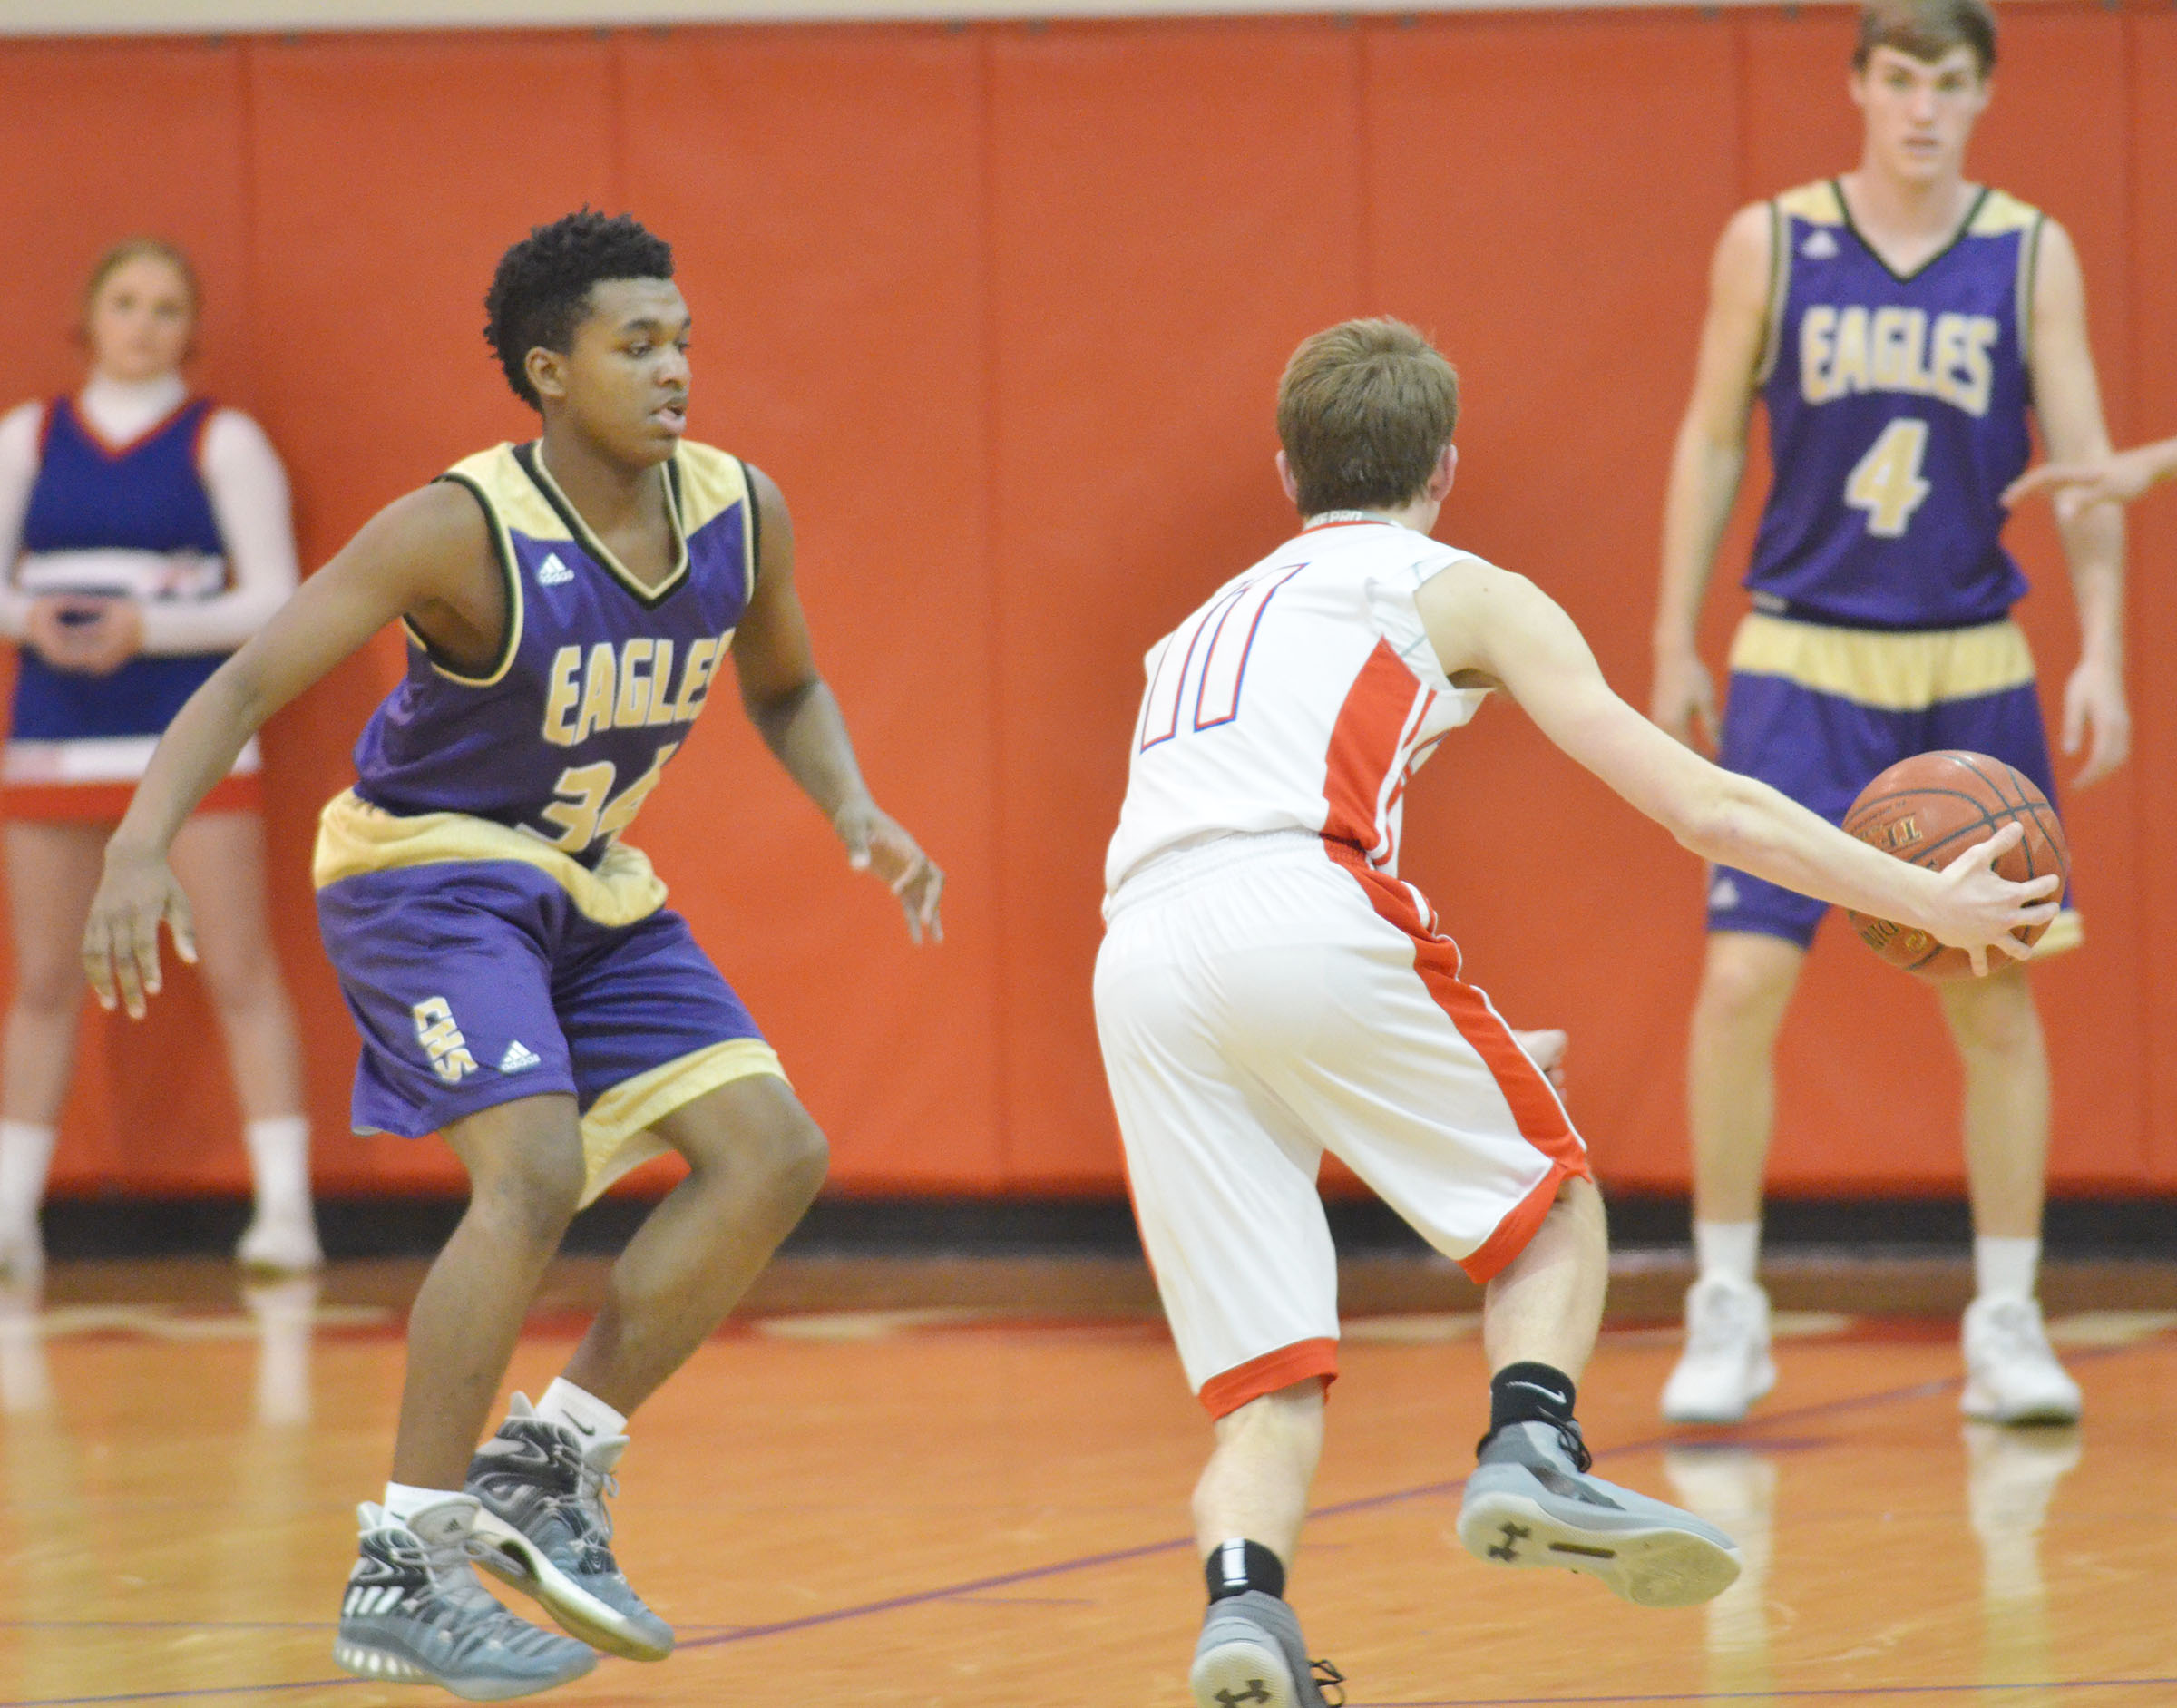 CHS senior Darius Bell plays defense.